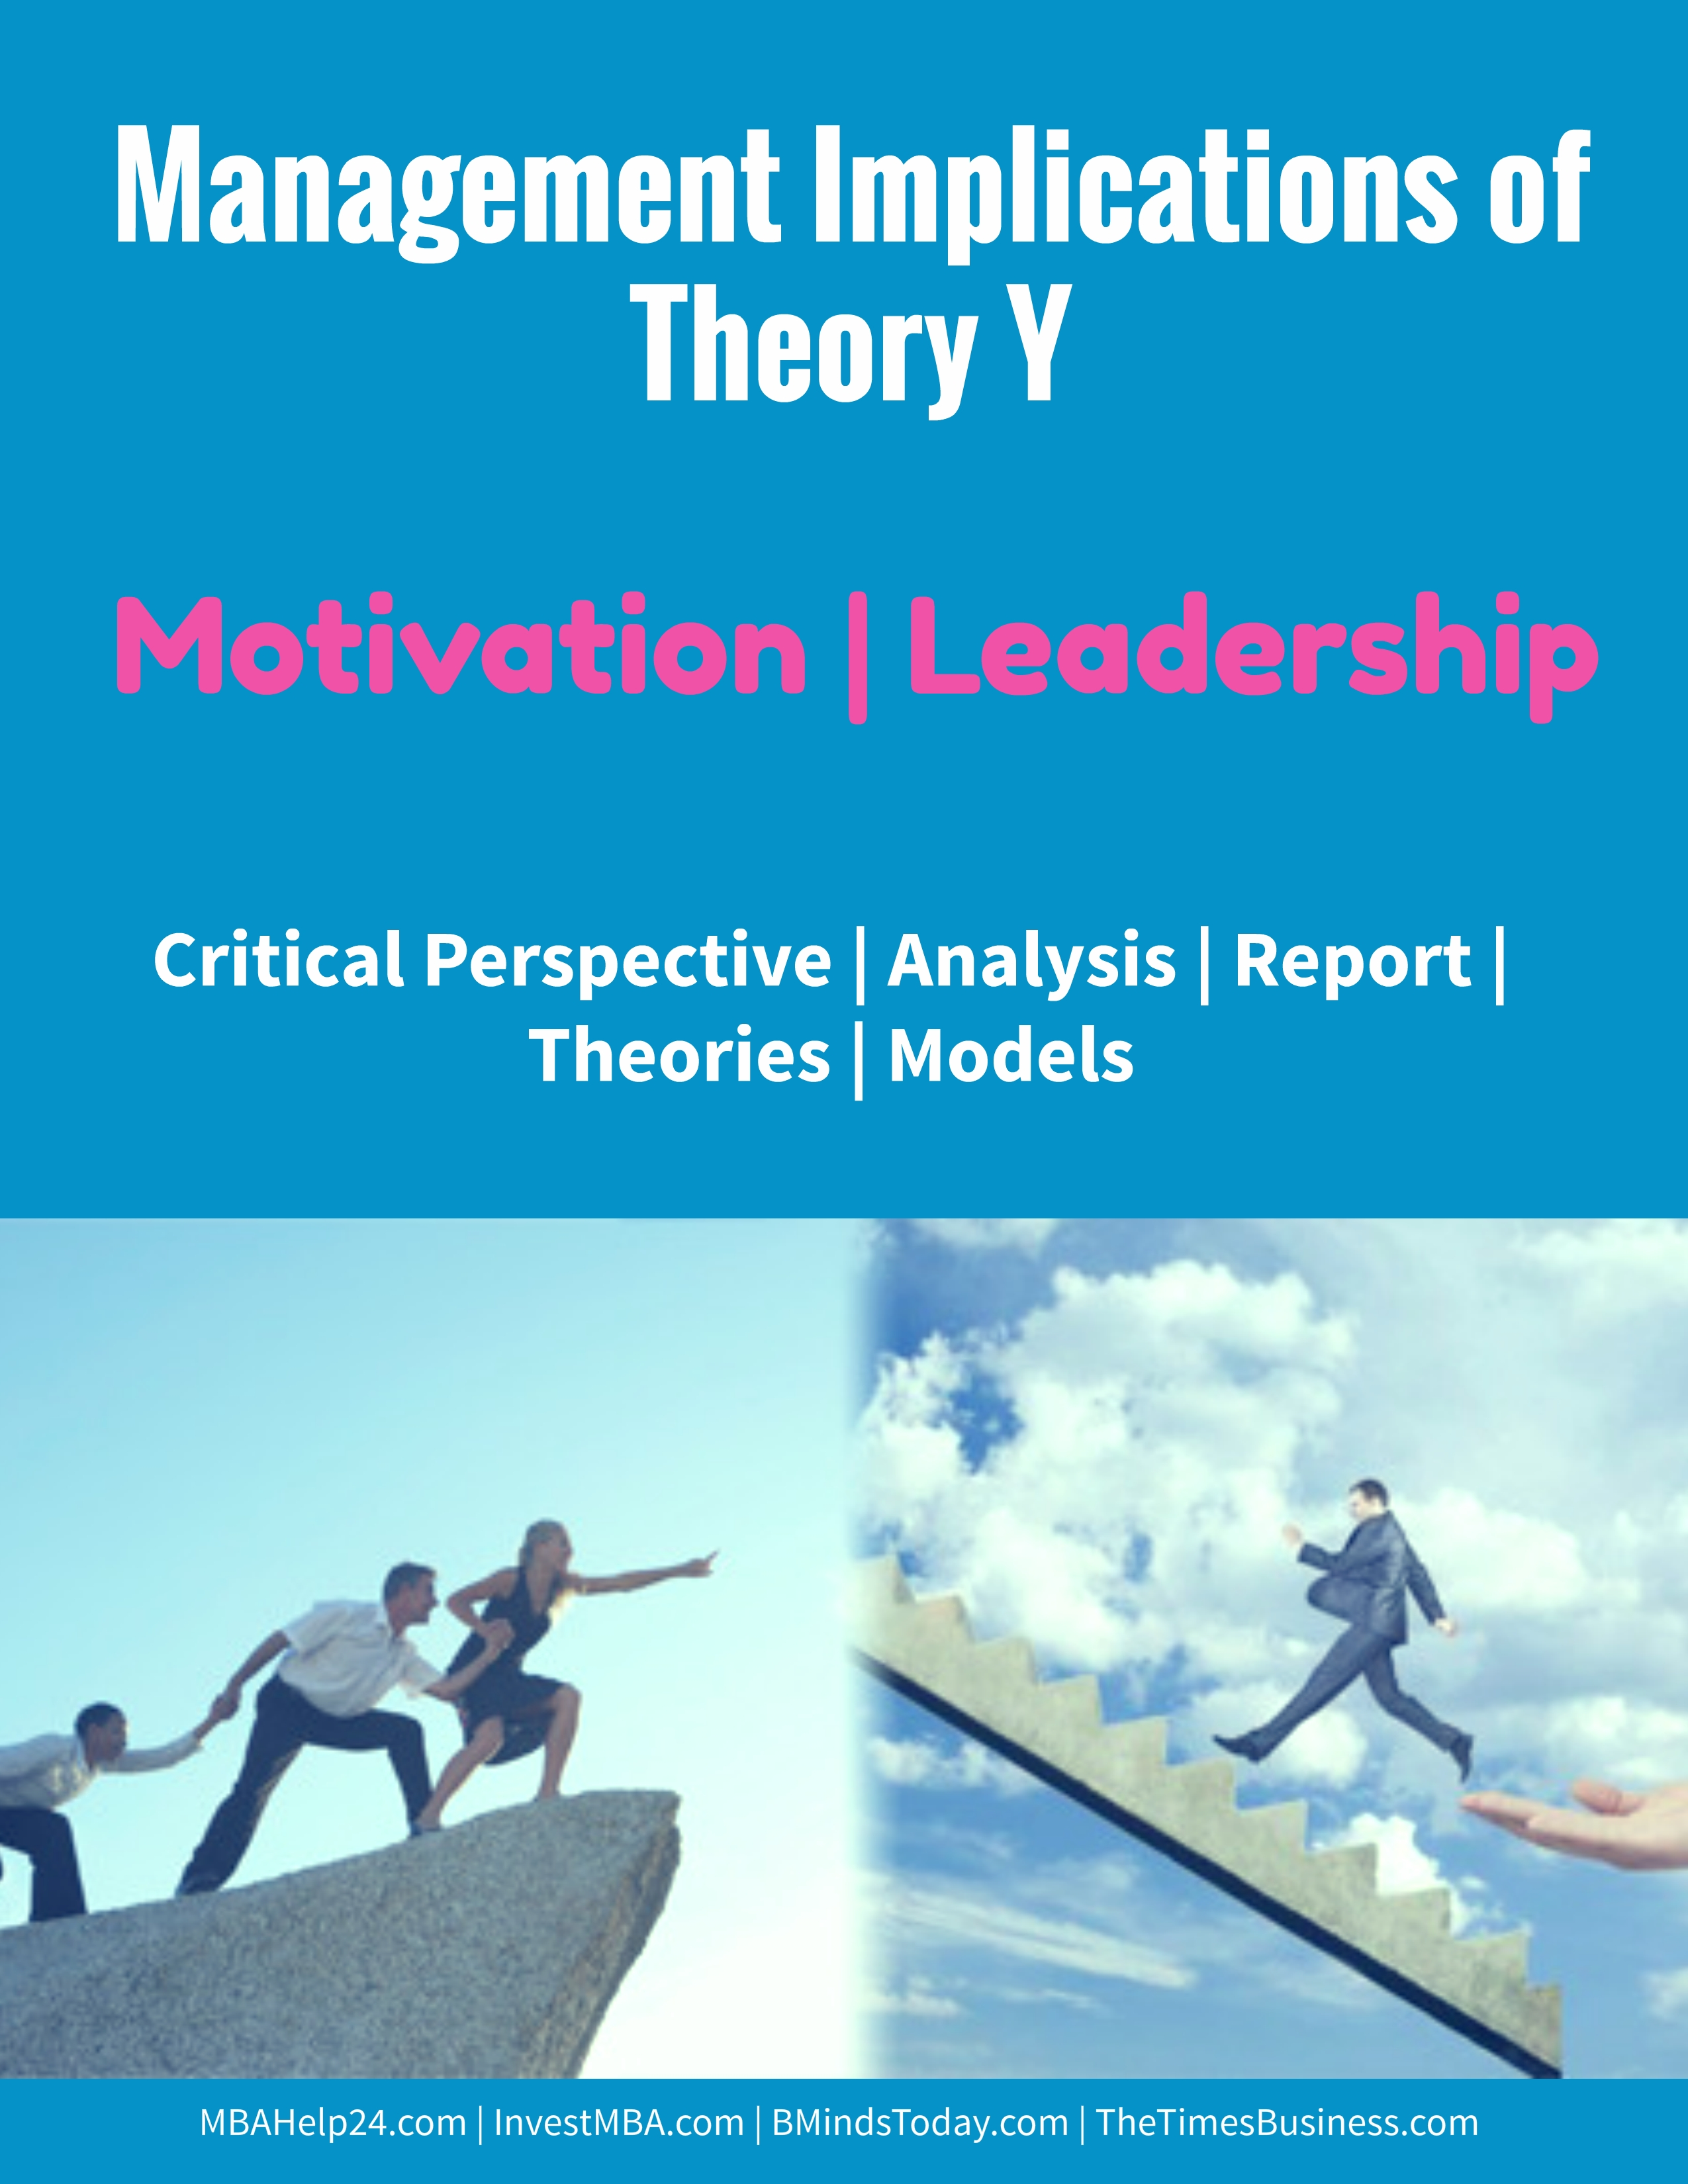 Management Implications of Theory Y | Motivation | Leadership theory y Management Implications of Theory Y | Motivation | Leadership management implications of theory y